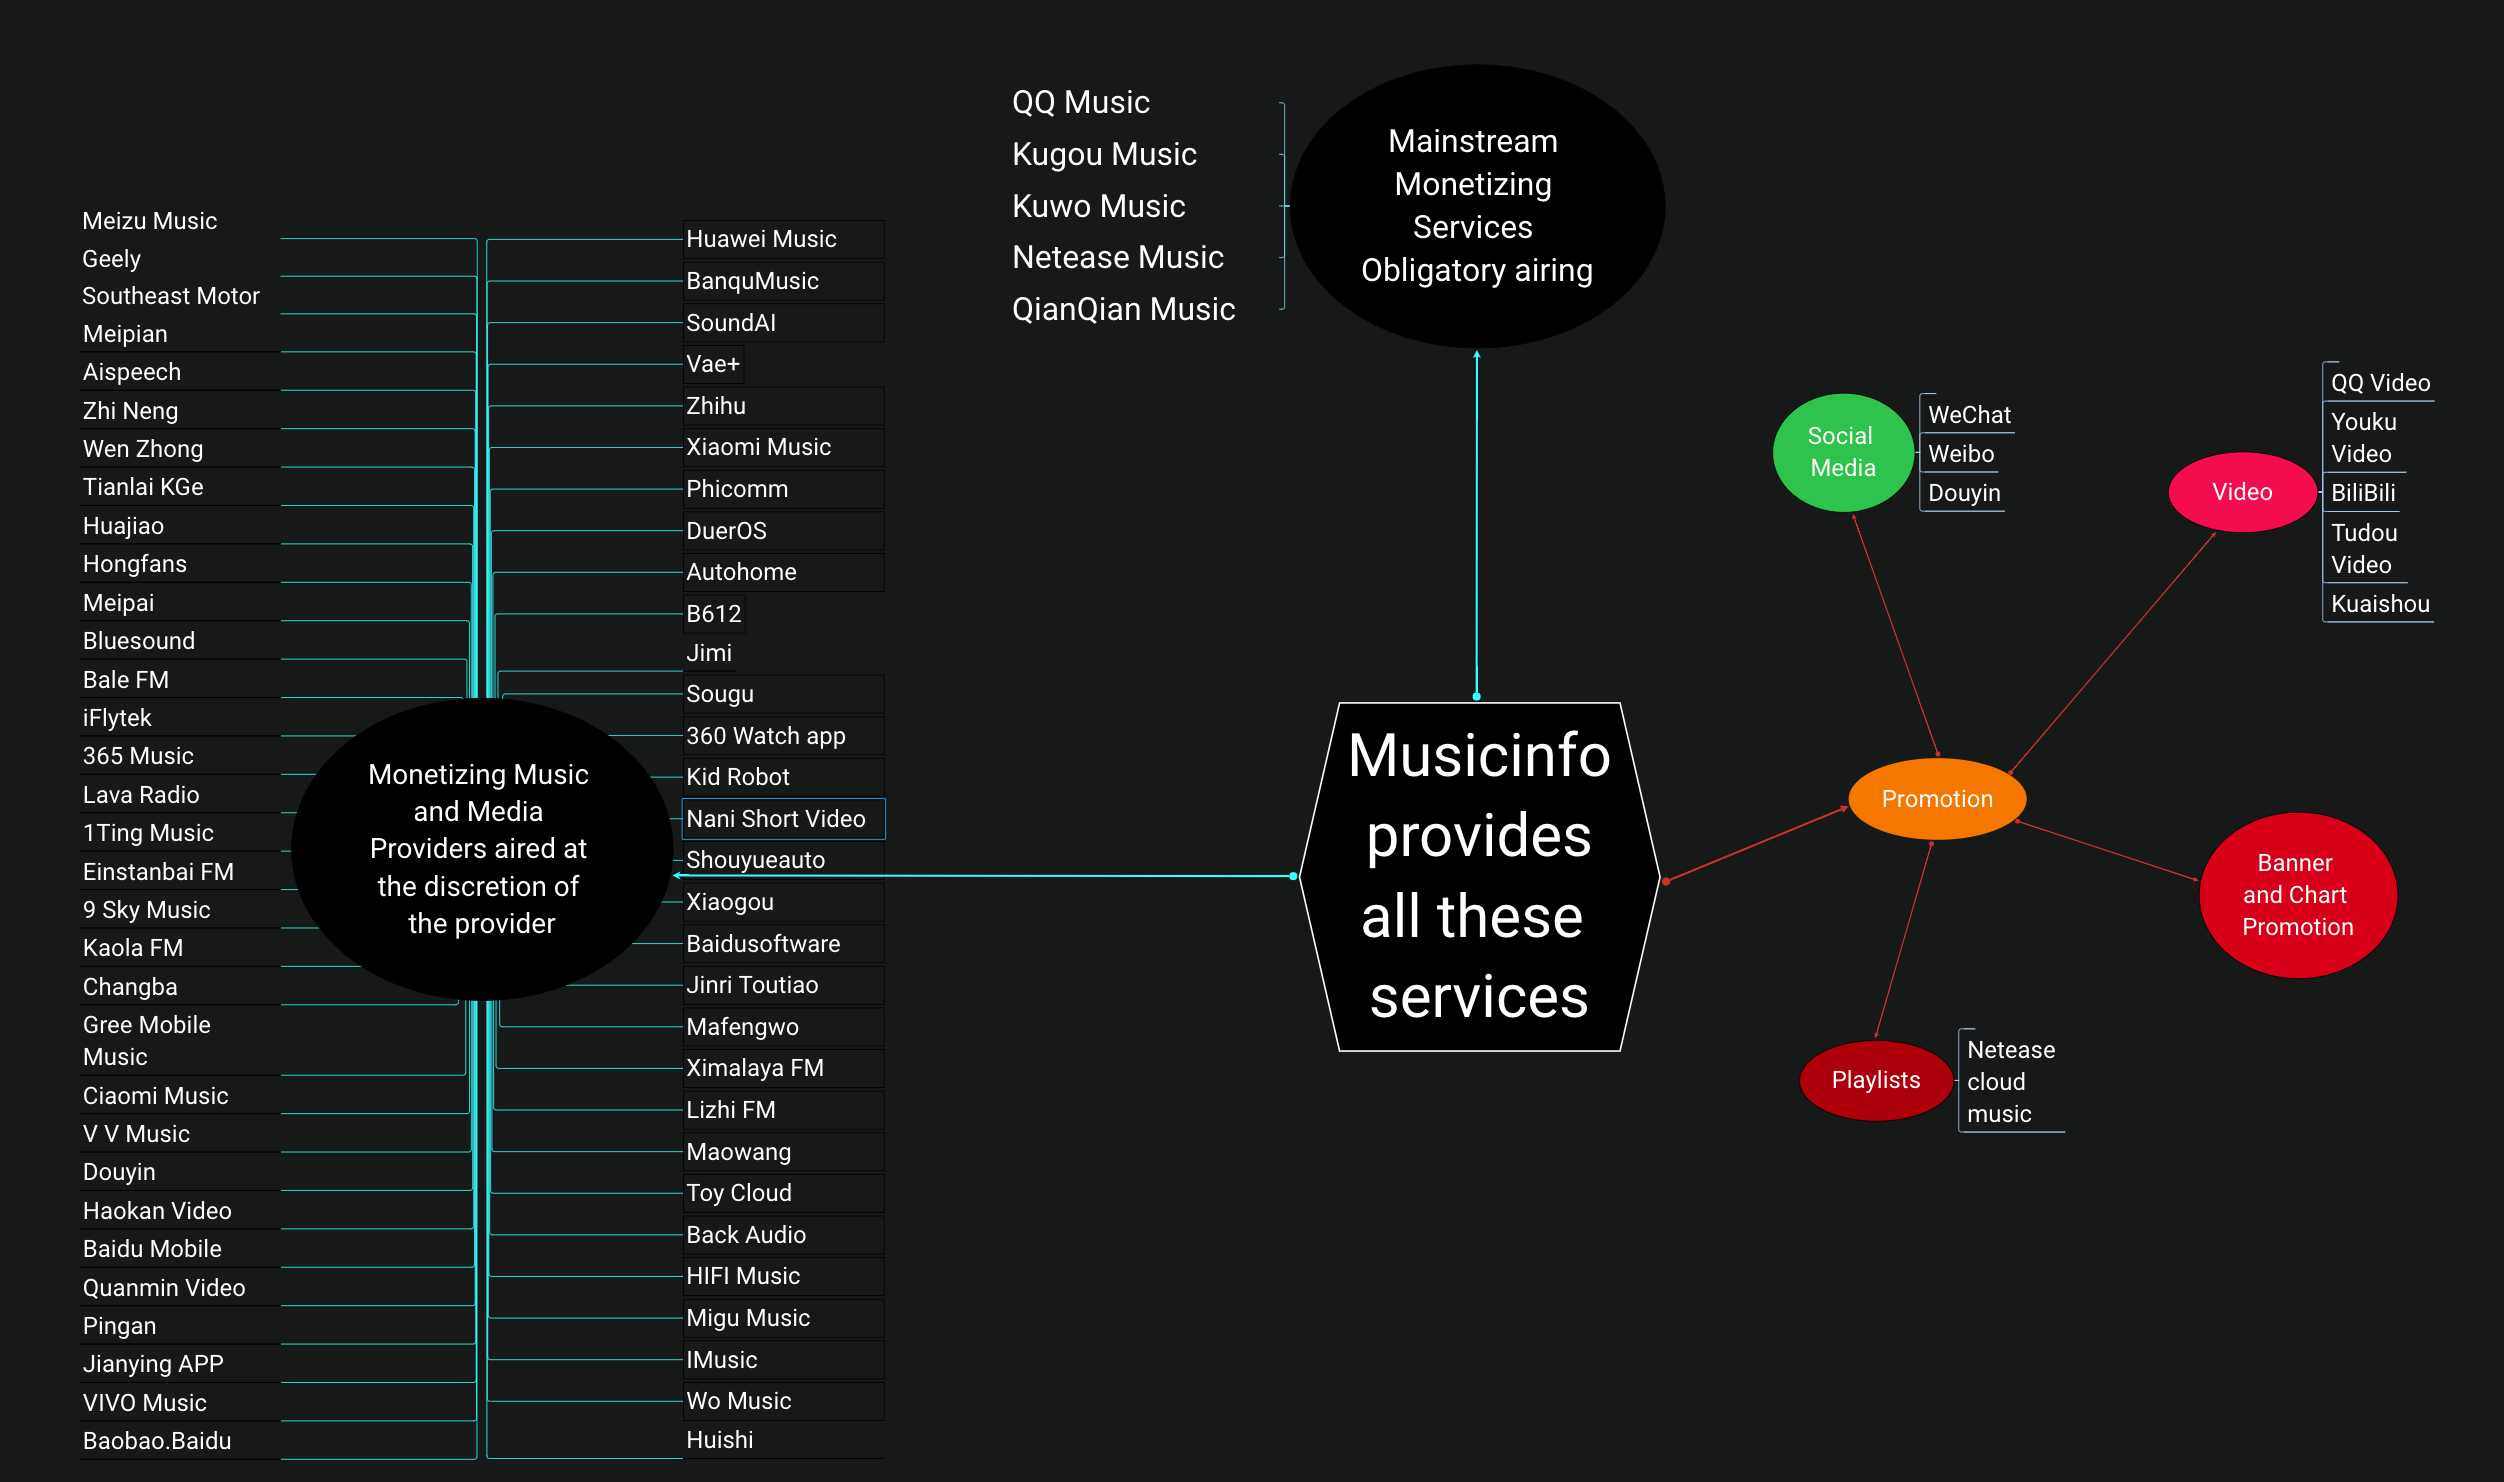 Musicinfo Overview 6